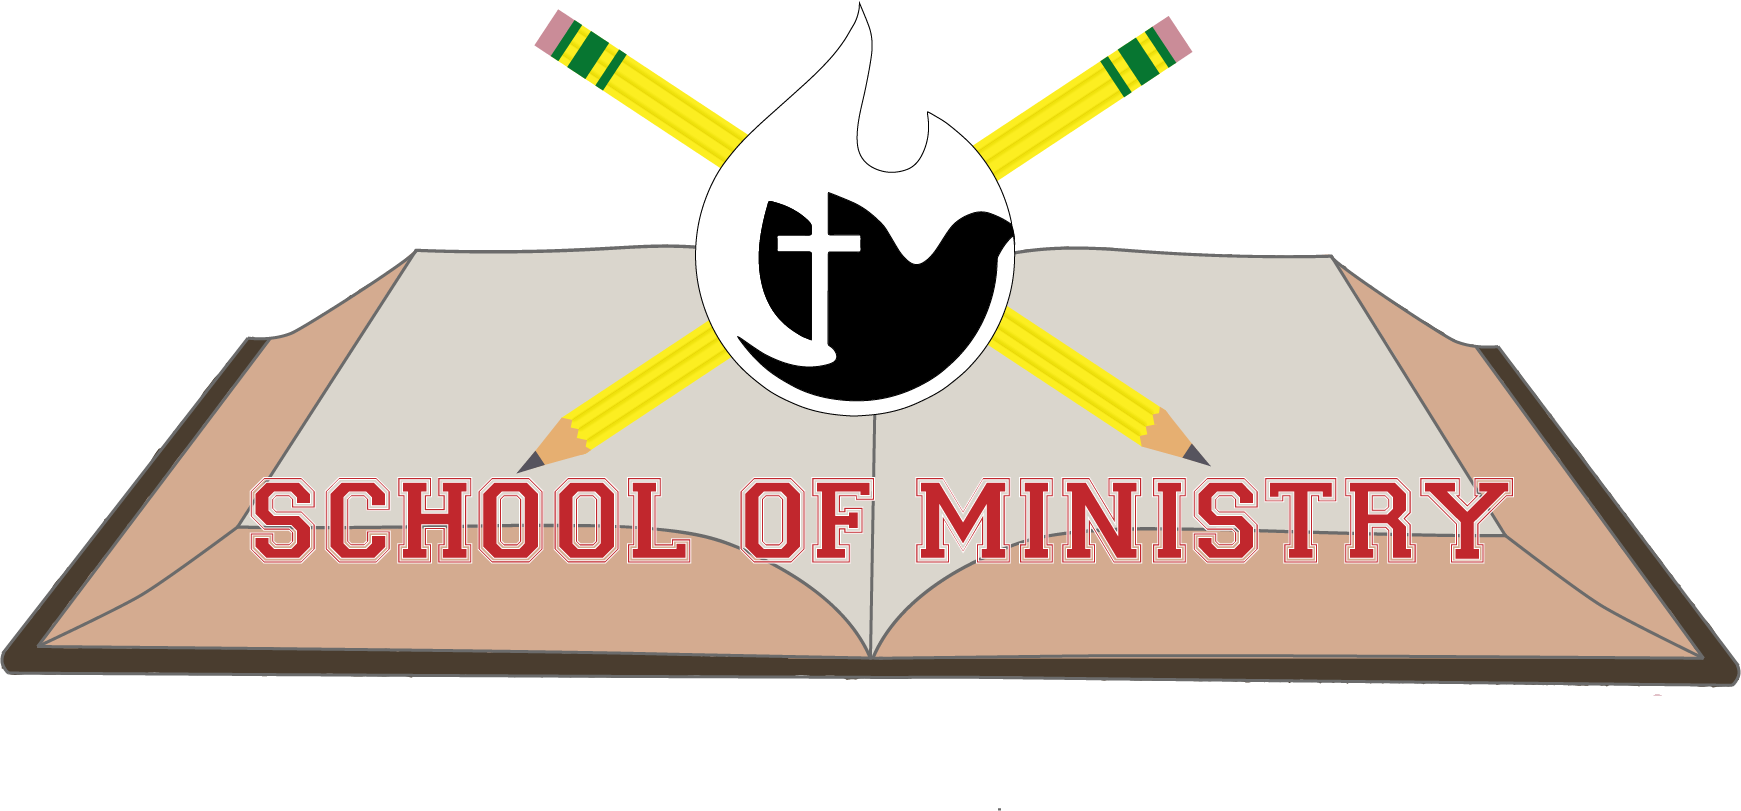 School of Ministry.png